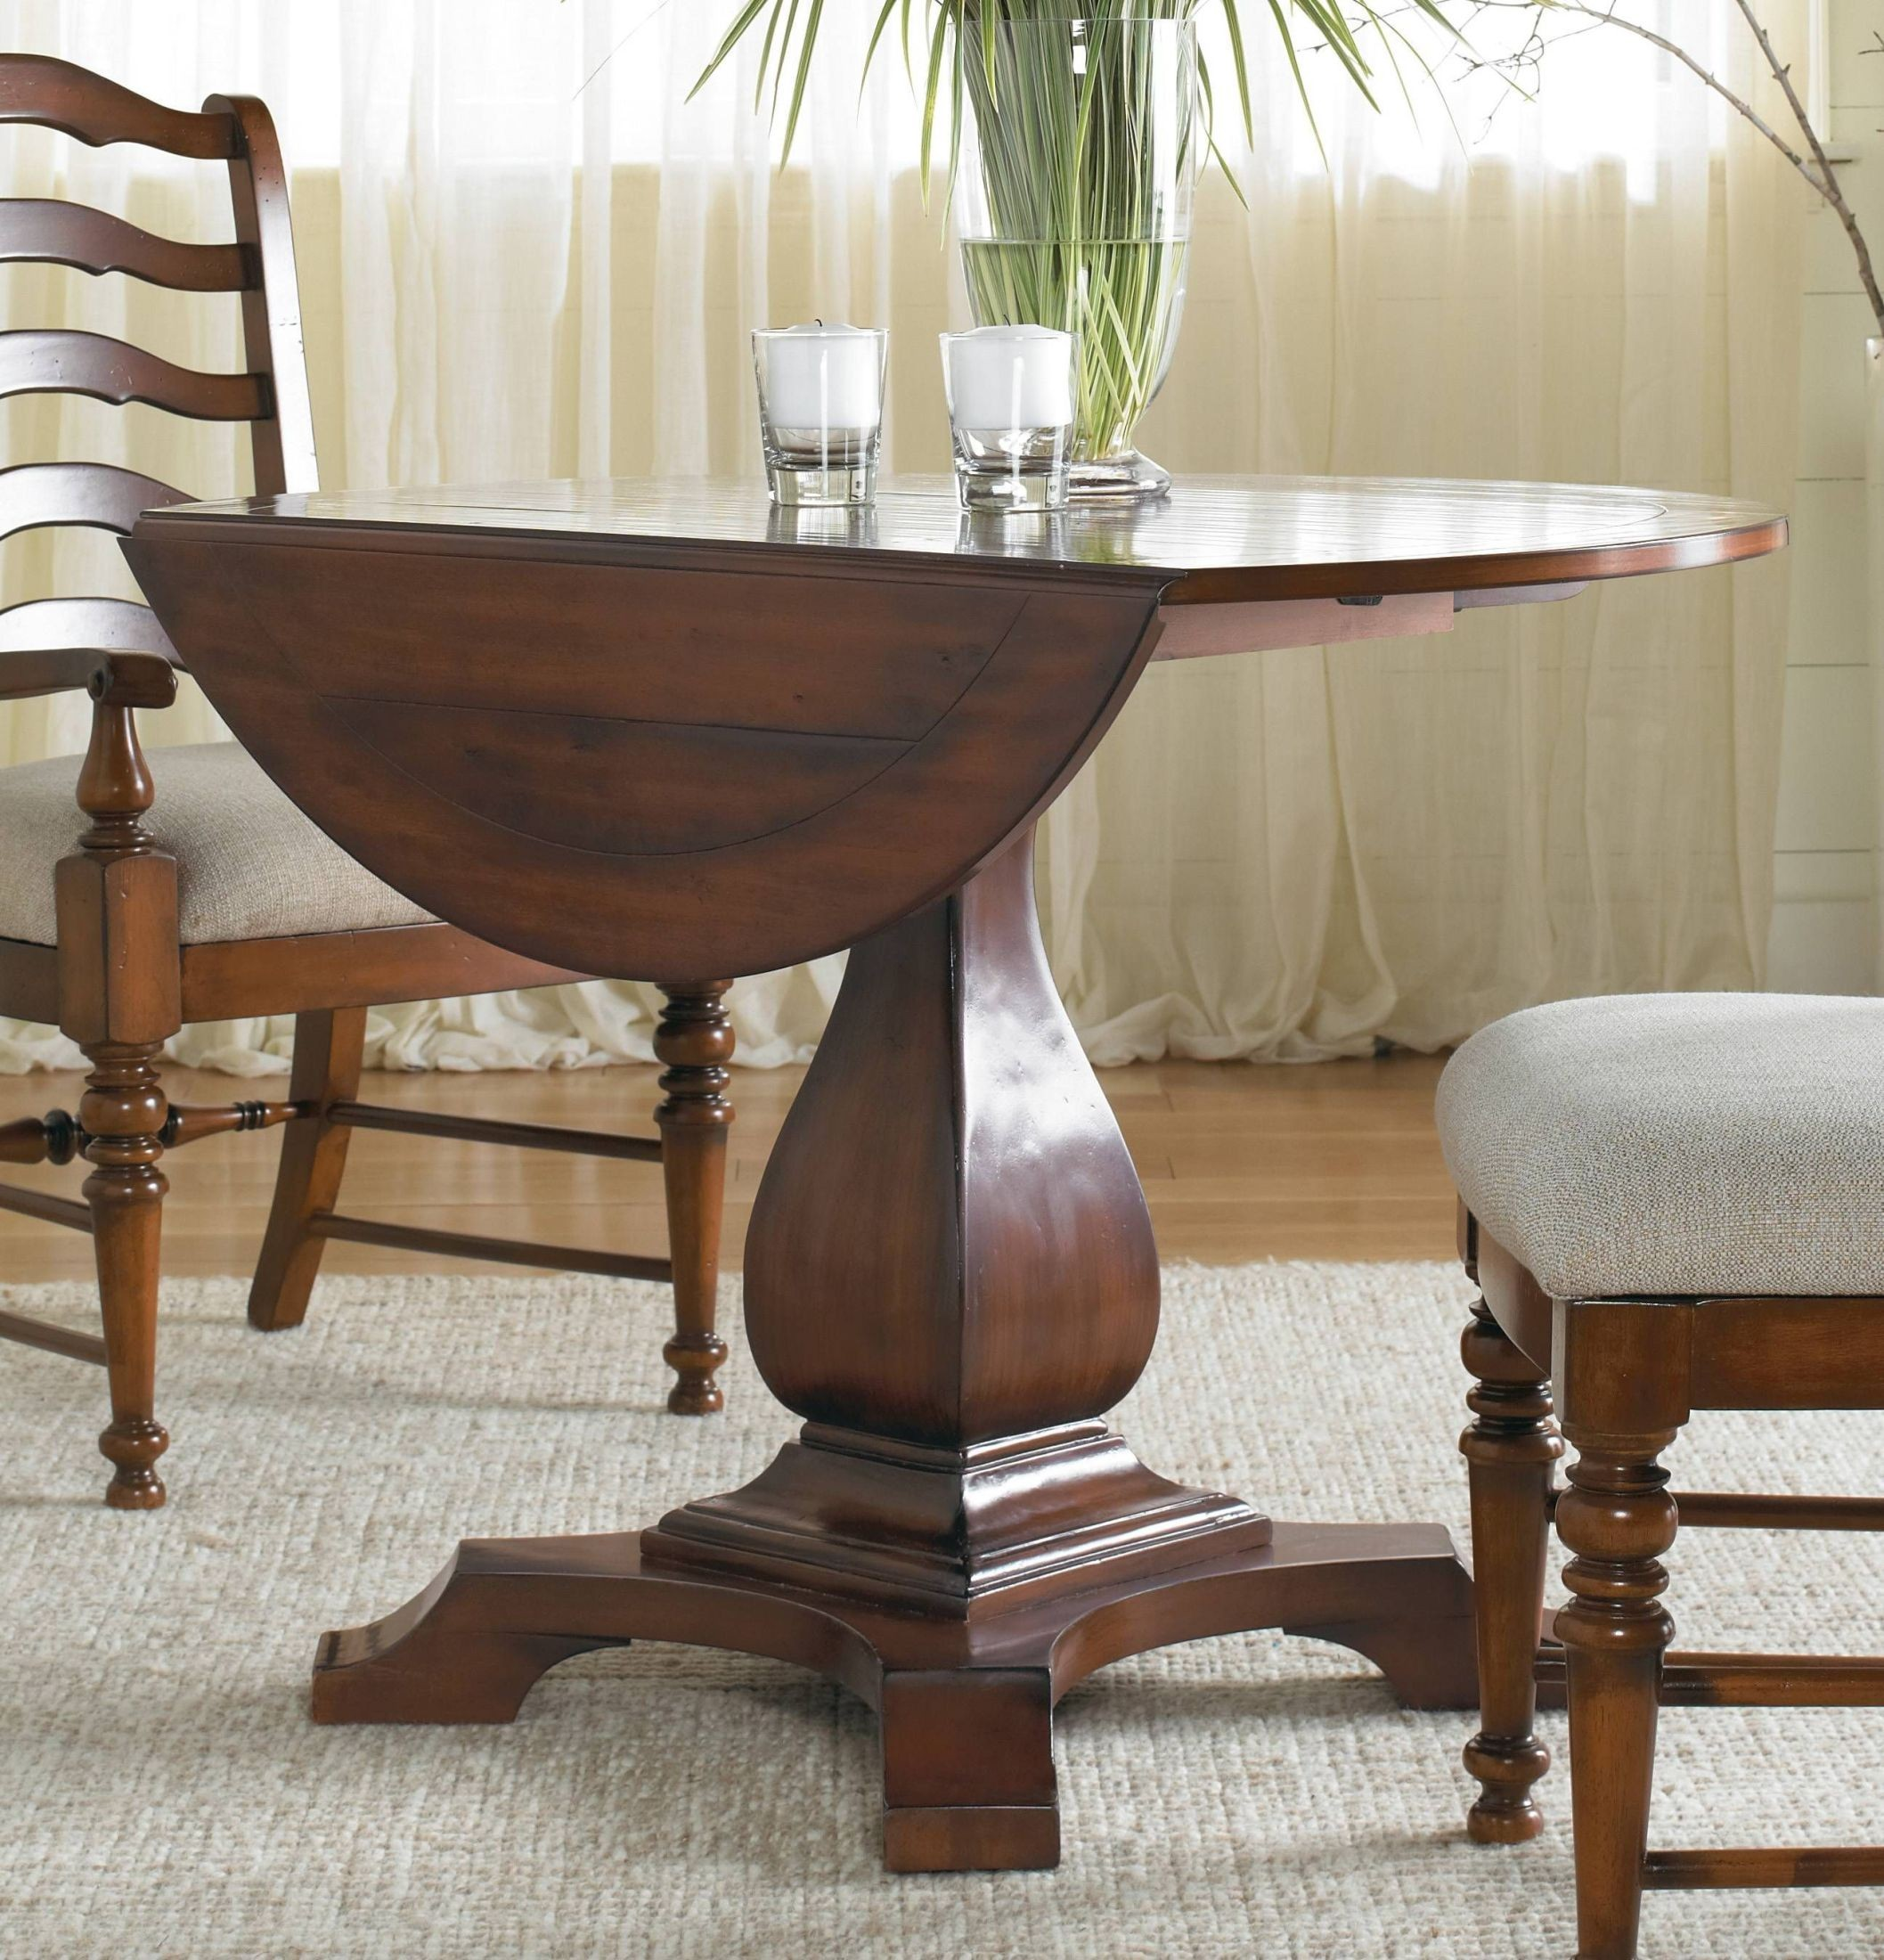 Waverly Place Cherry Round Drop Leaf Pedestal Dining Table From Hooker Coleman Furniture